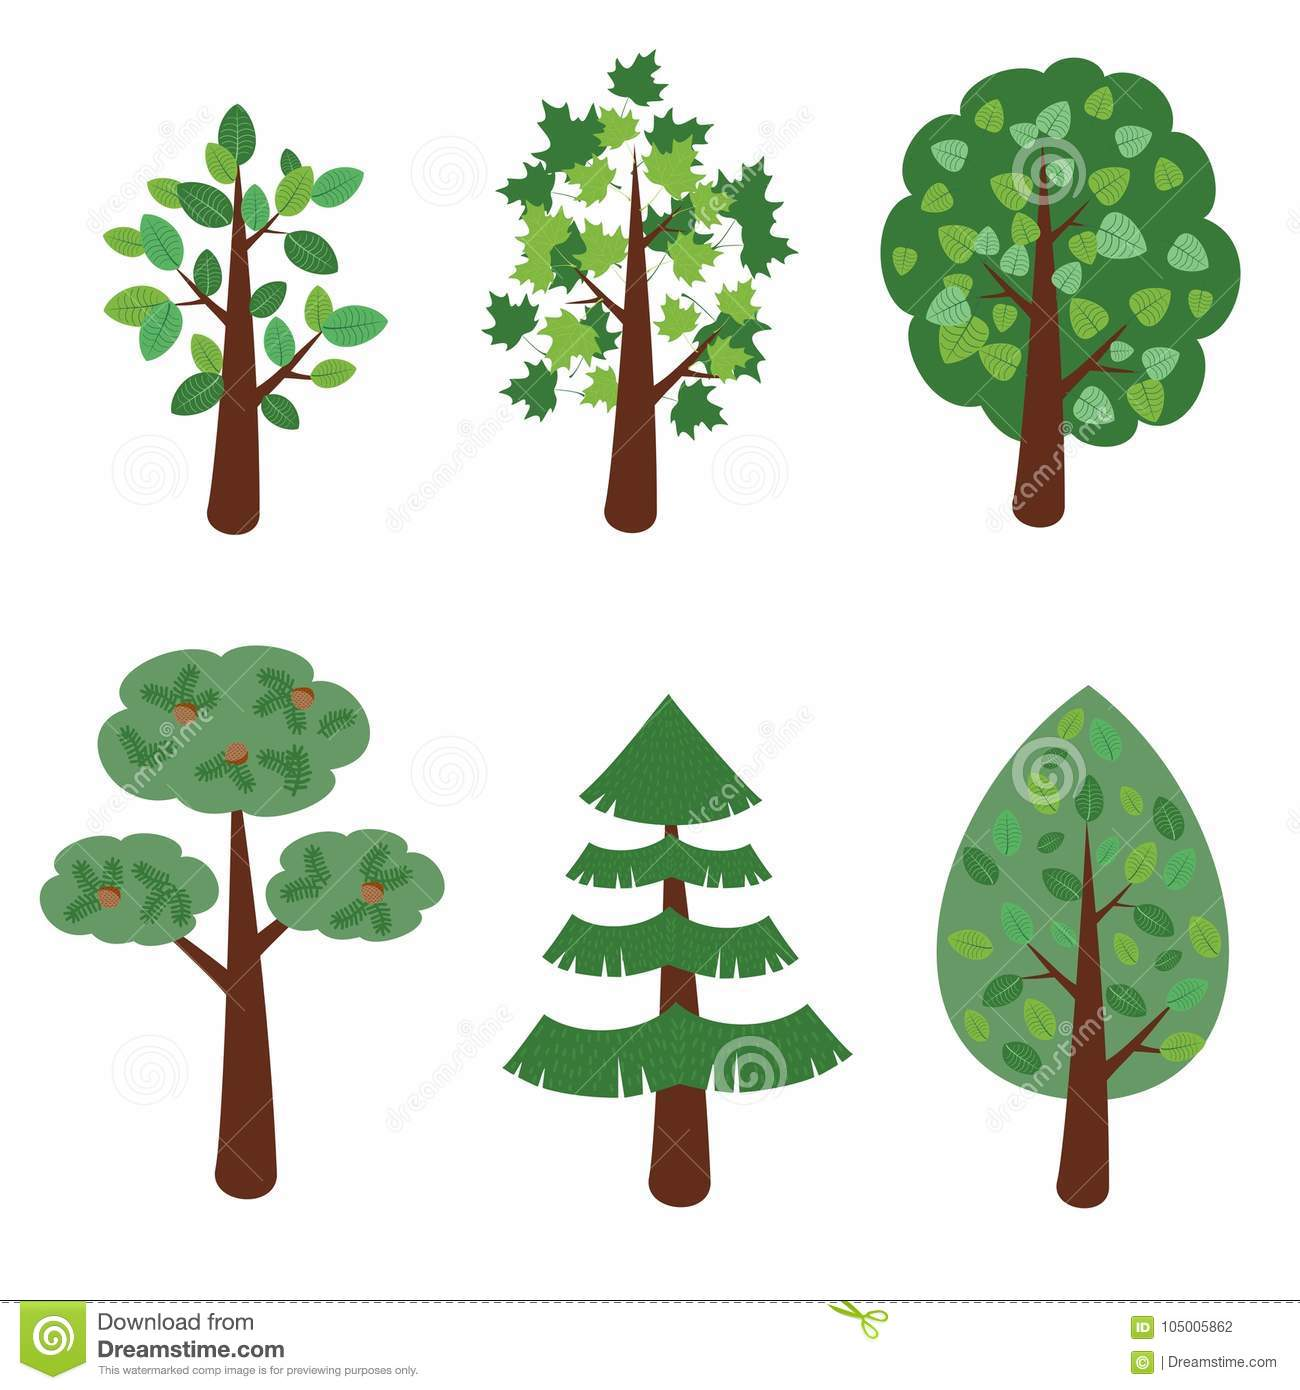 Set Of Simple Cartoon Deciduous Trees And Conifers Vector Illustration Stock Vector Illustration Of Foliage Ecology 105005862 These trees are pain in the.ss for me, and ive tried so many times to paint them right, now as i am painting one. https www dreamstime com set simple cartoon tree vector illustration set simple cartoon deciduous trees conifers vector illustration image105005862